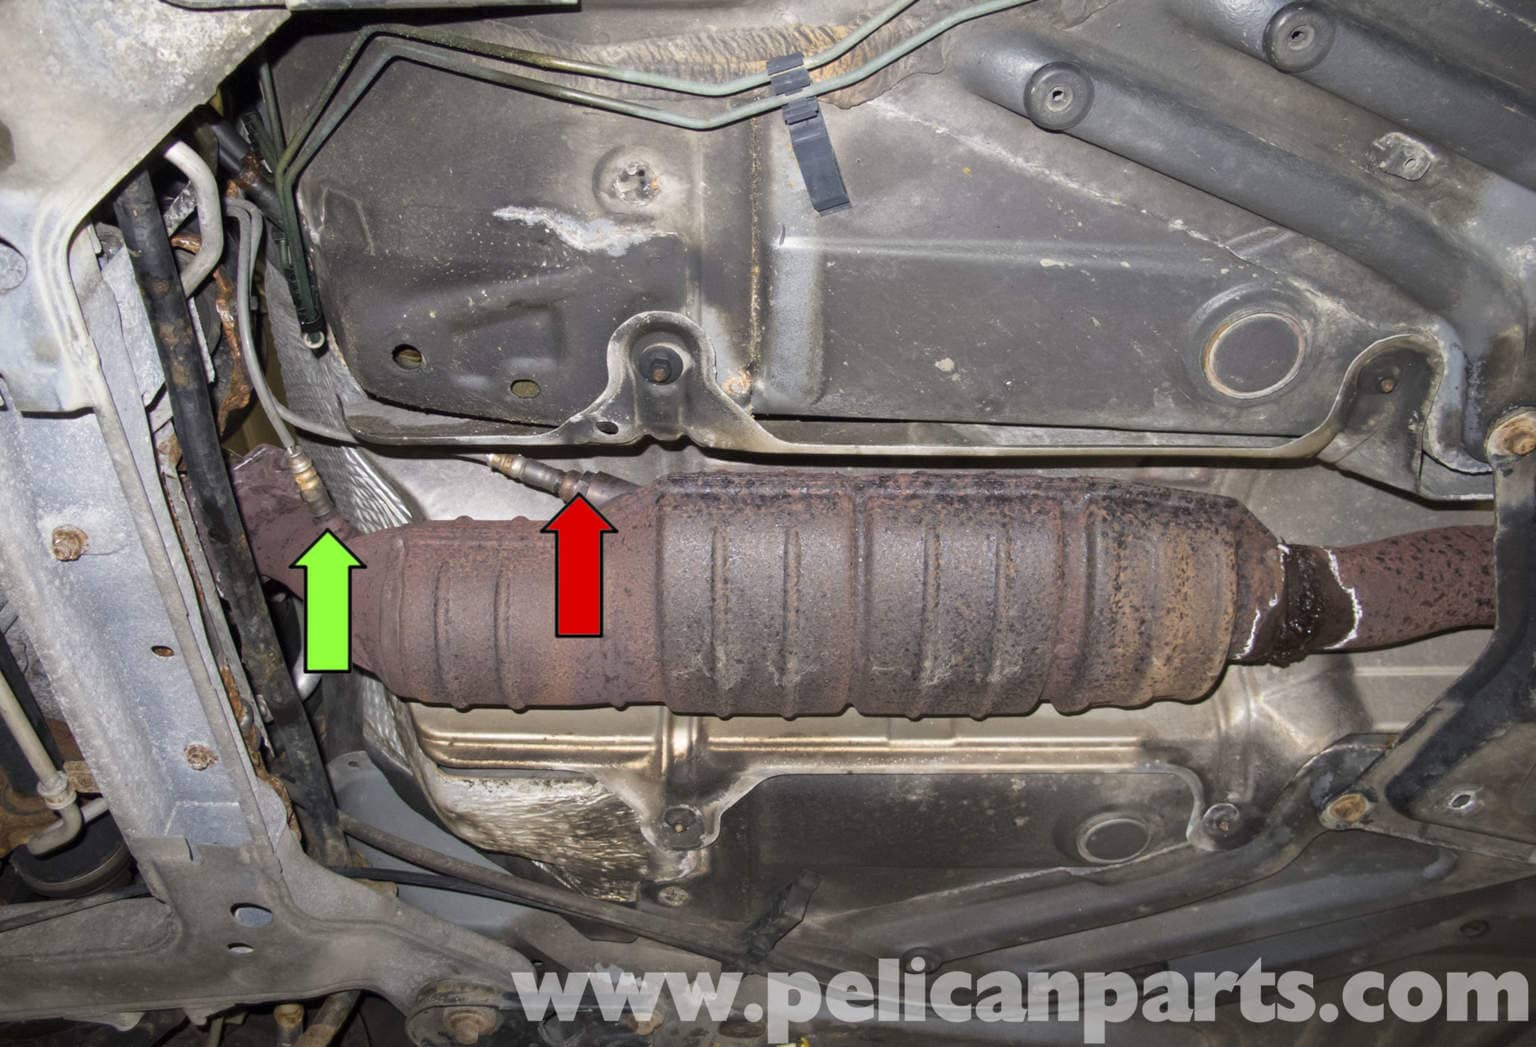 Volvo V70 Oxygen Sensor Replacement Normally Aspirated Engine Color T By Wiring Diagram 1998 S70 Large Image